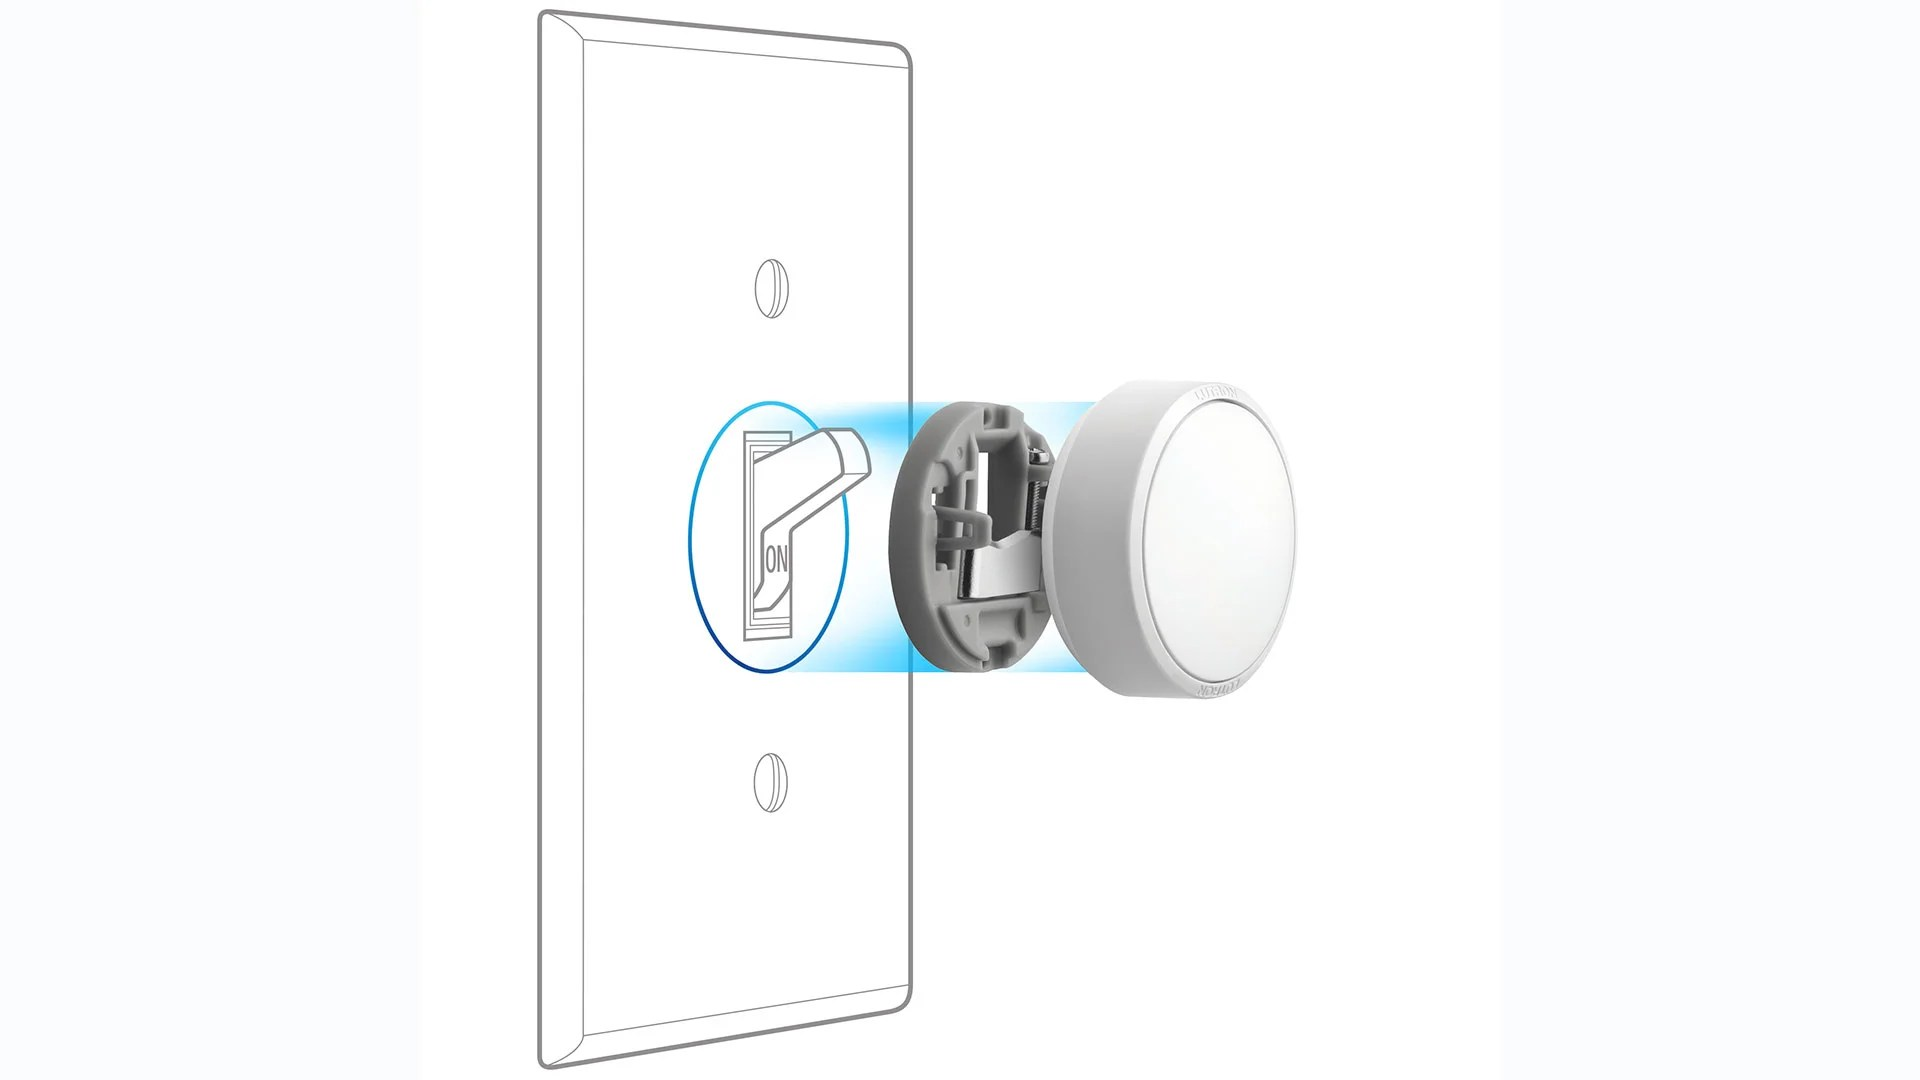 Lutron Teamed Up With Philips To Solve One Of The Most